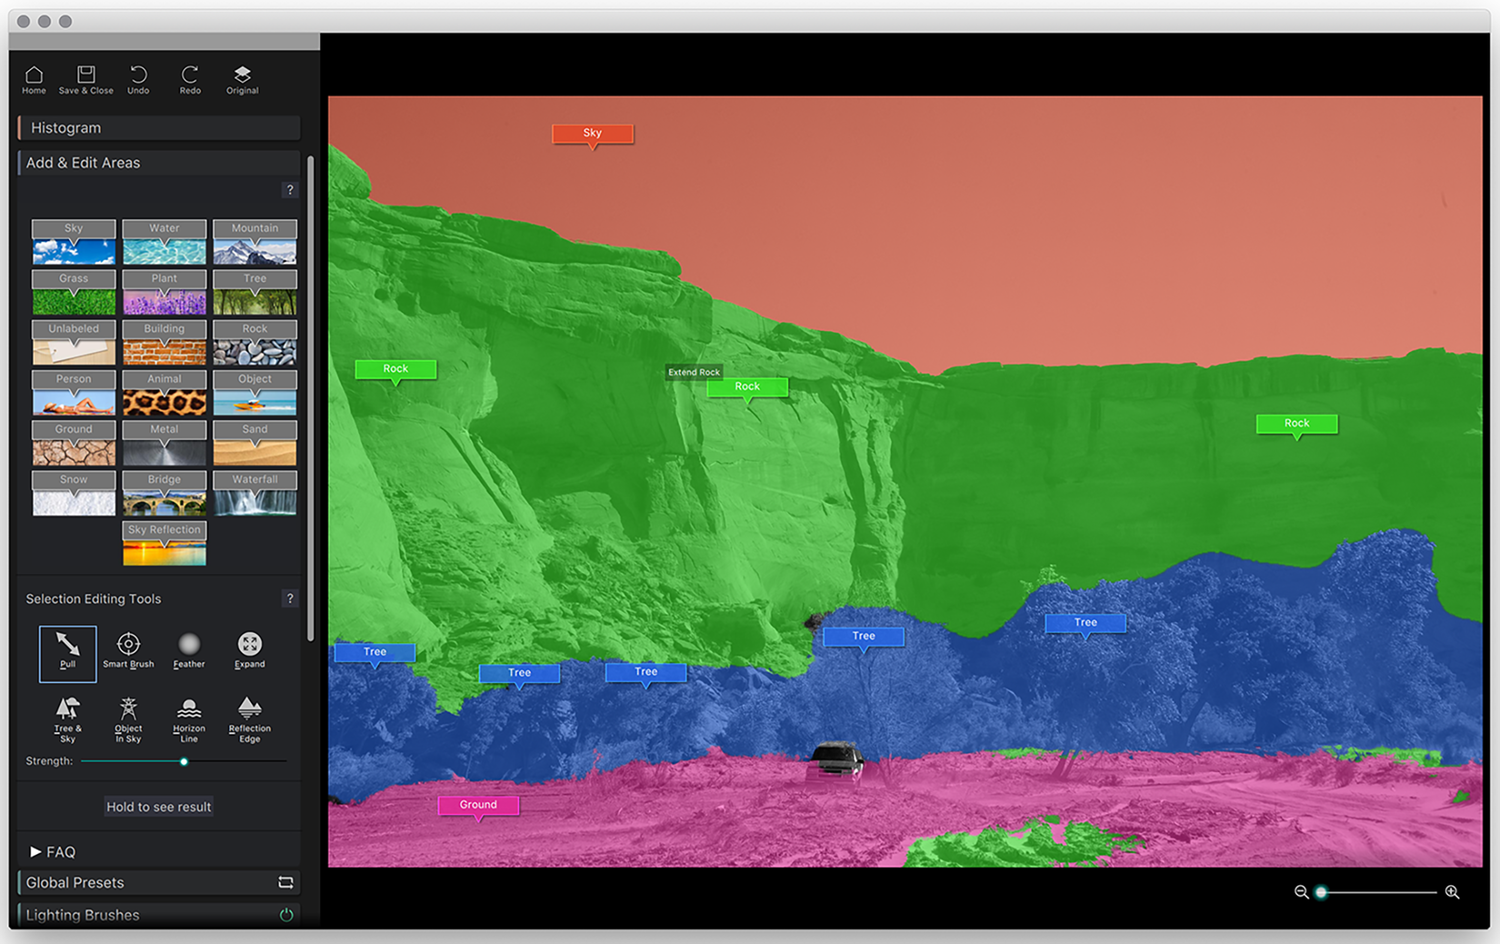 LandscapePro 3 Adds New Tricks to Already Tricky Software | Fstoppers